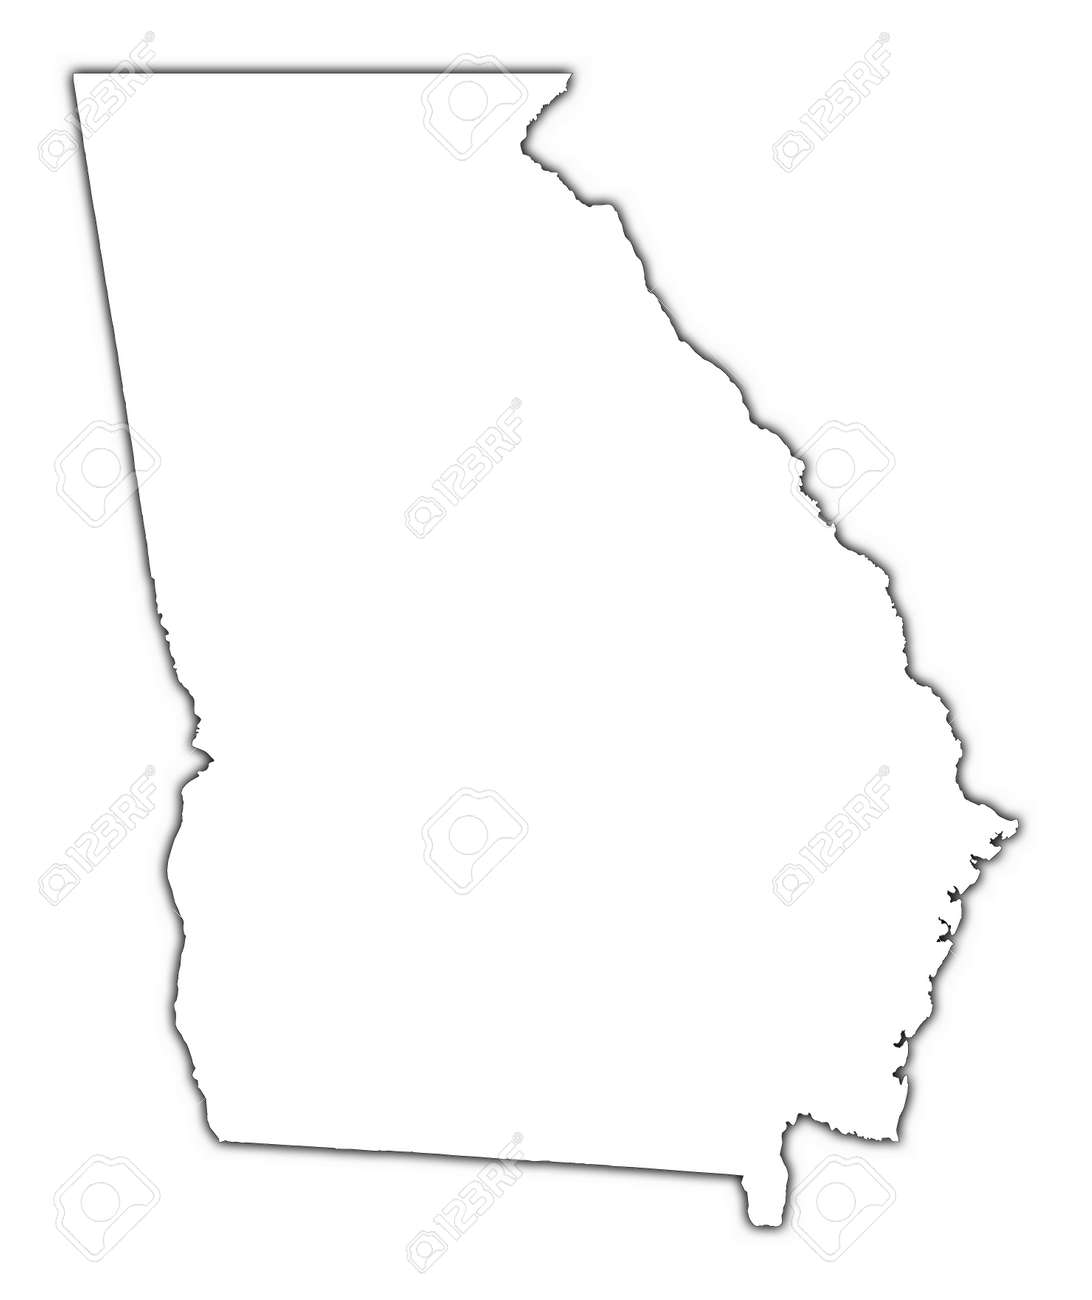 Georgia Outline Map Georgia (USA) Outline Map With Shadow. Detailed, Mercator